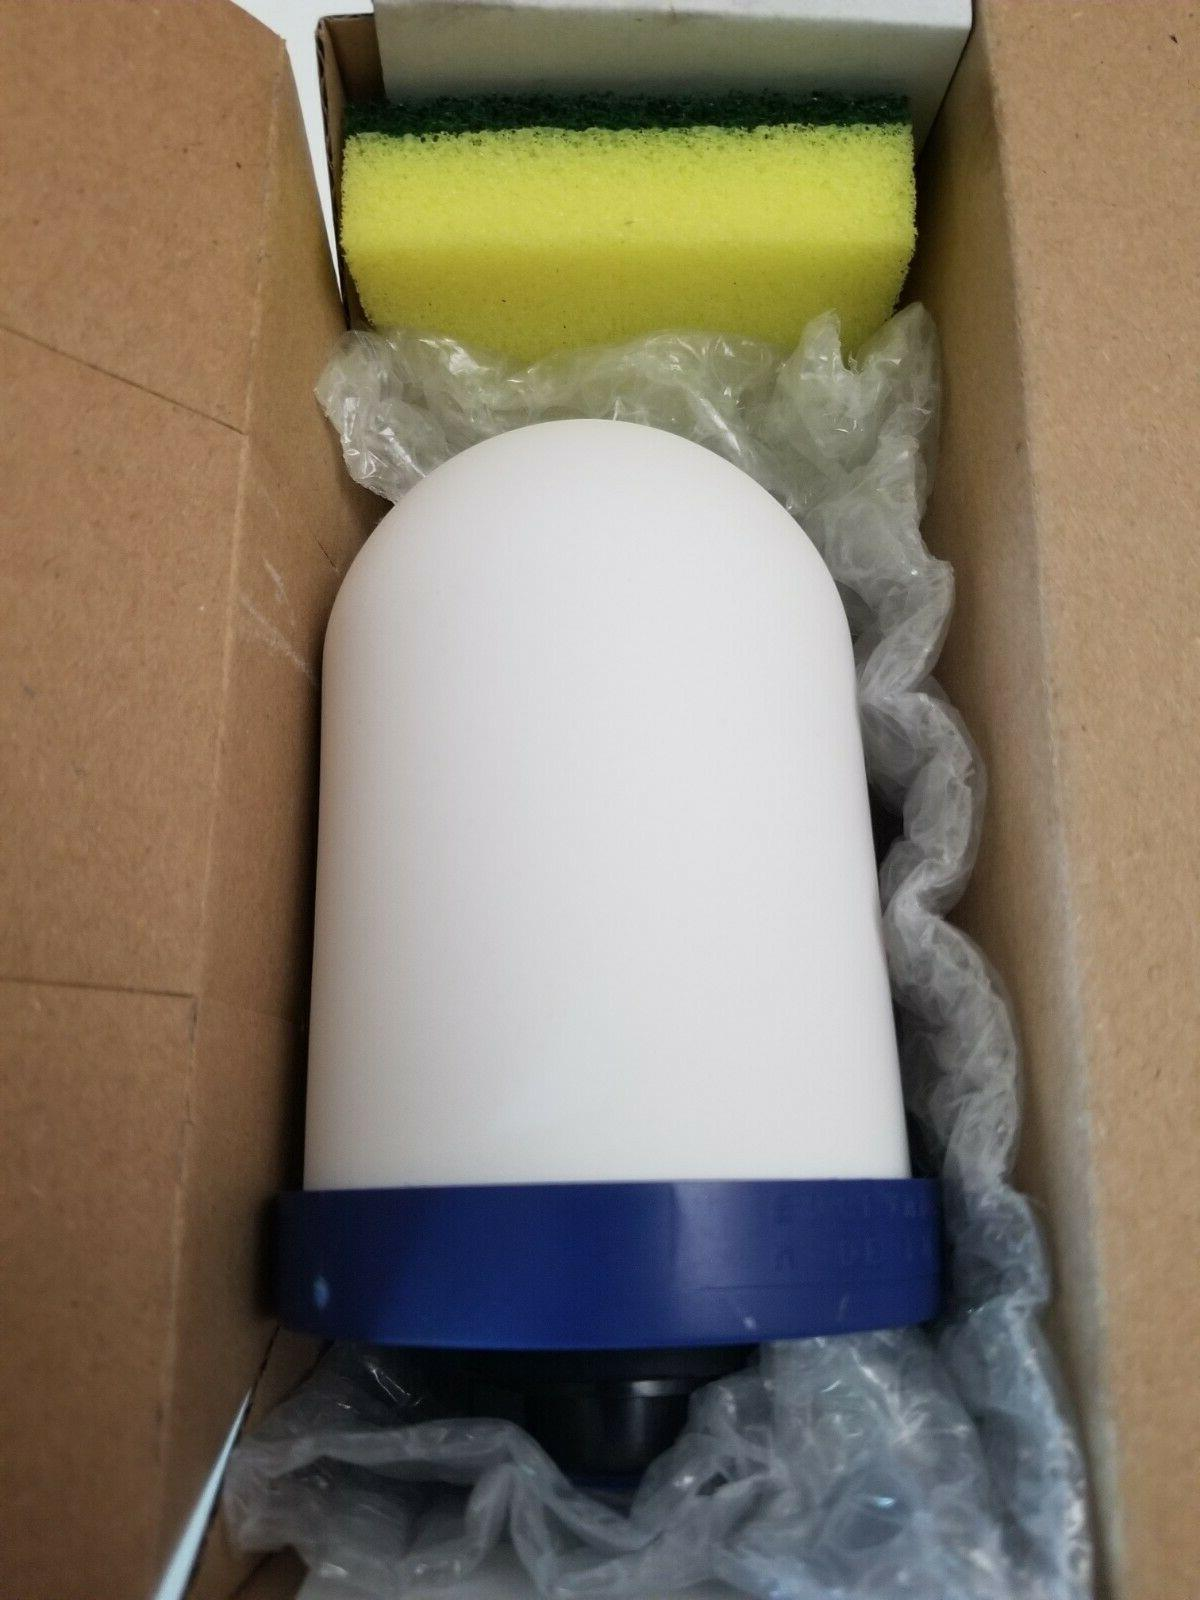 water pitcher replacement filter 4 inch proone